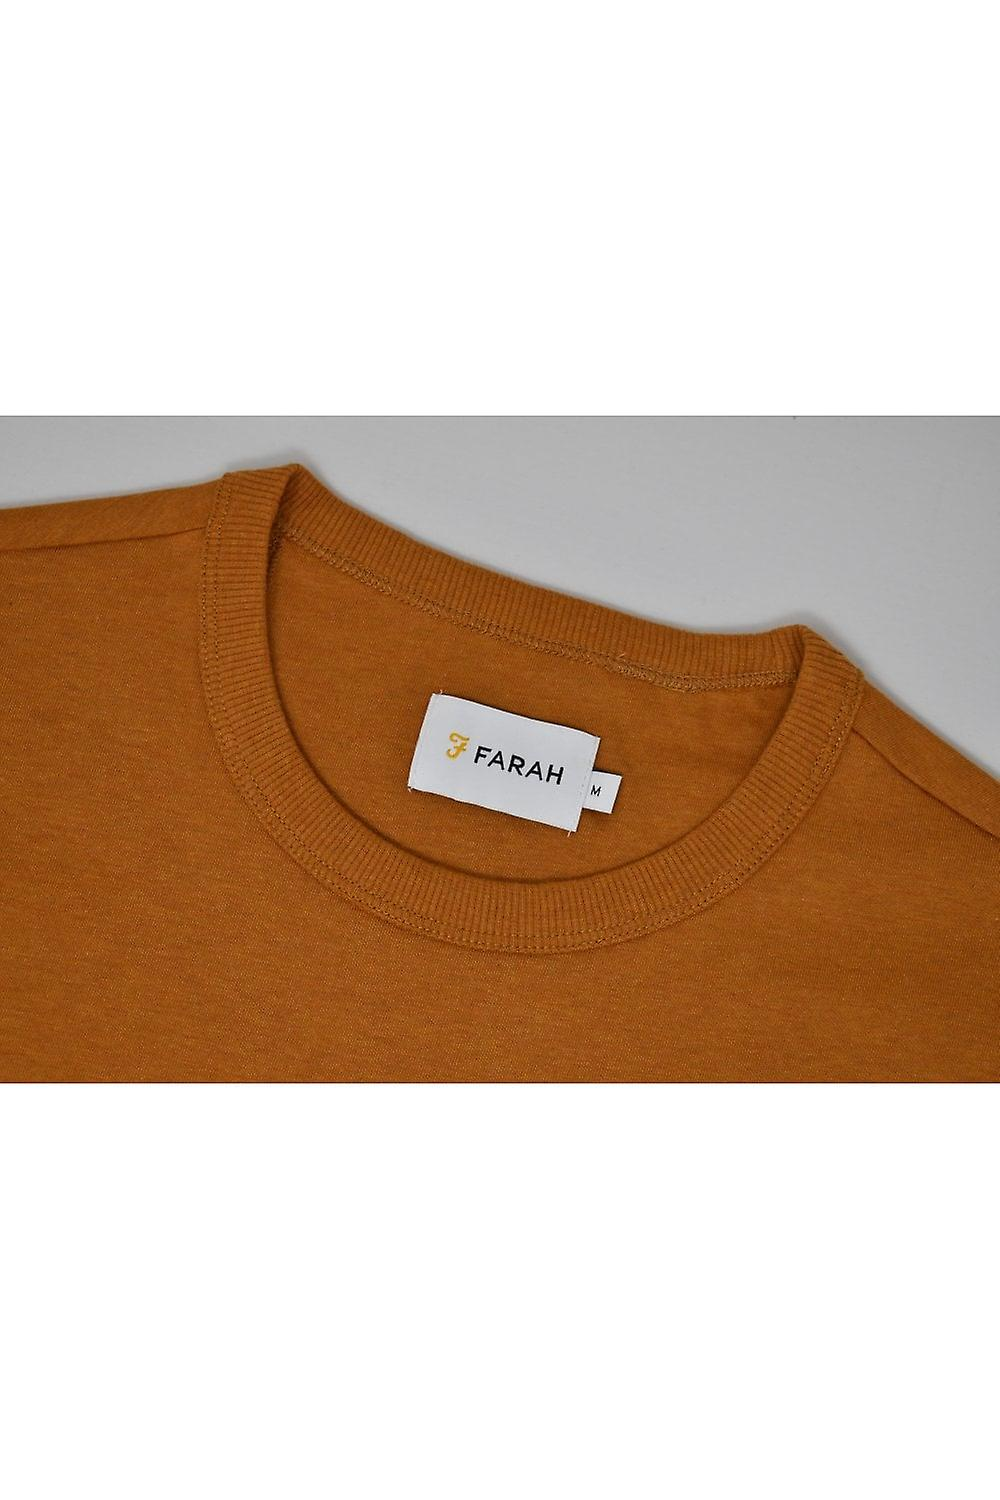 Farah Dennis Short-Sleeved T-Shirt (Gold Marl)